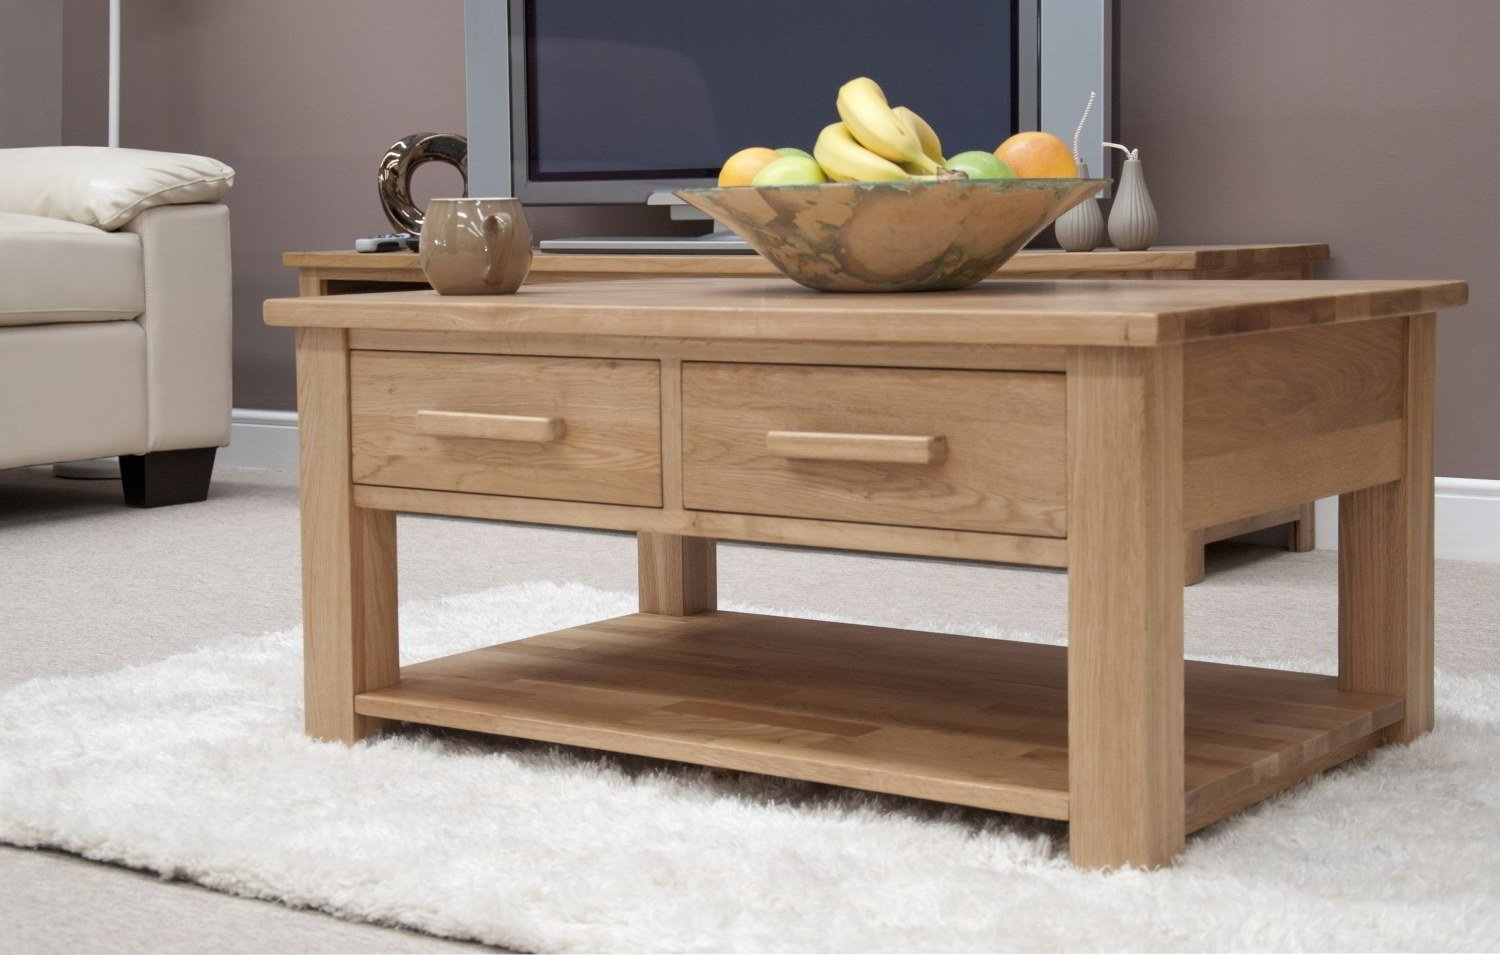 Eton solid oak furniture storage coffee table with drawers amazon eton solid oak furniture storage coffee table with drawers amazon kitchen home geotapseo Choice Image